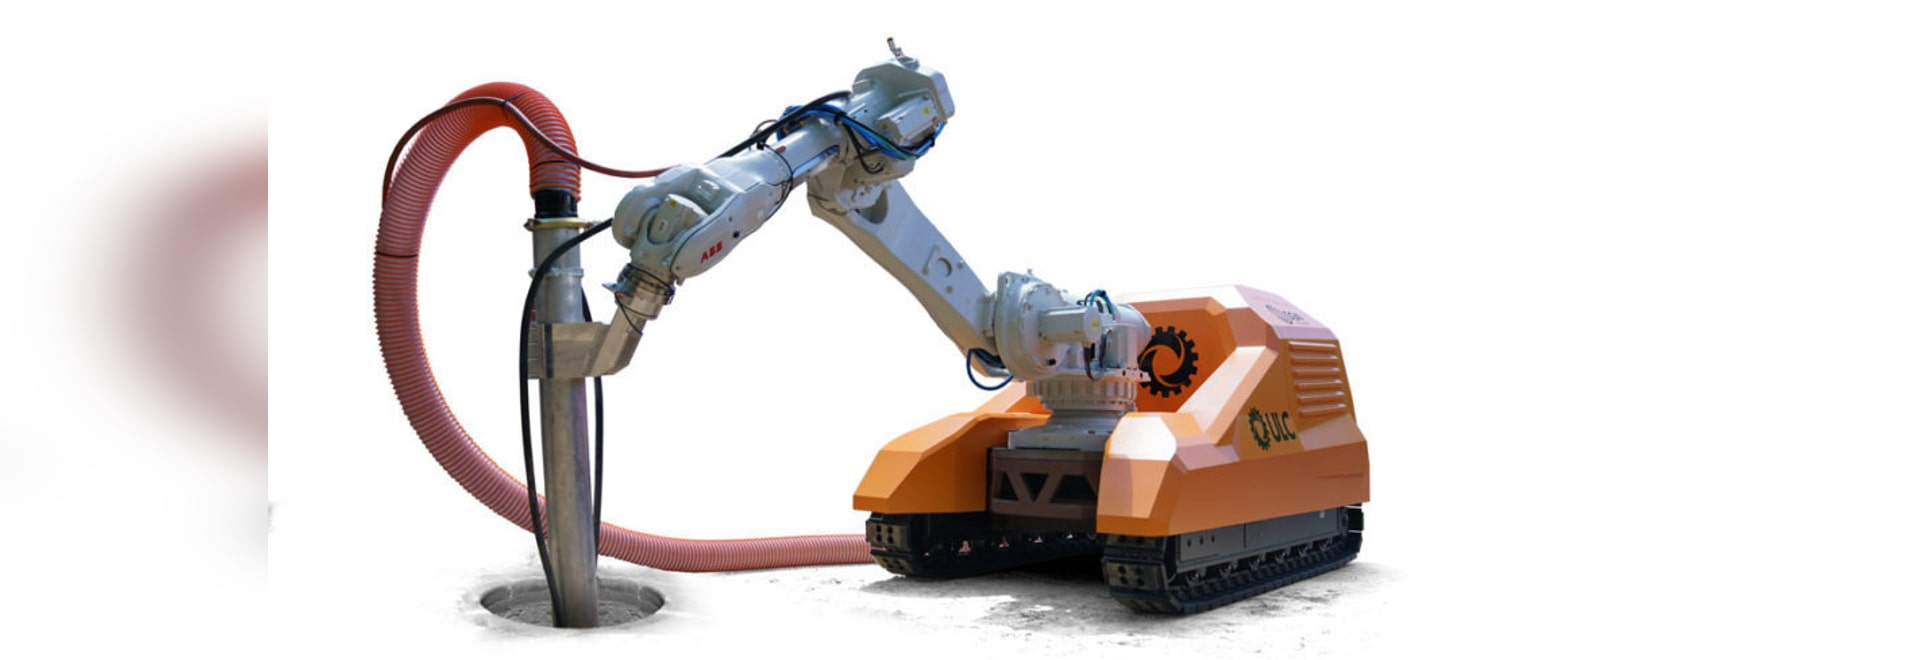 ULC Robotics, SGN to develop all-electric excavation robot